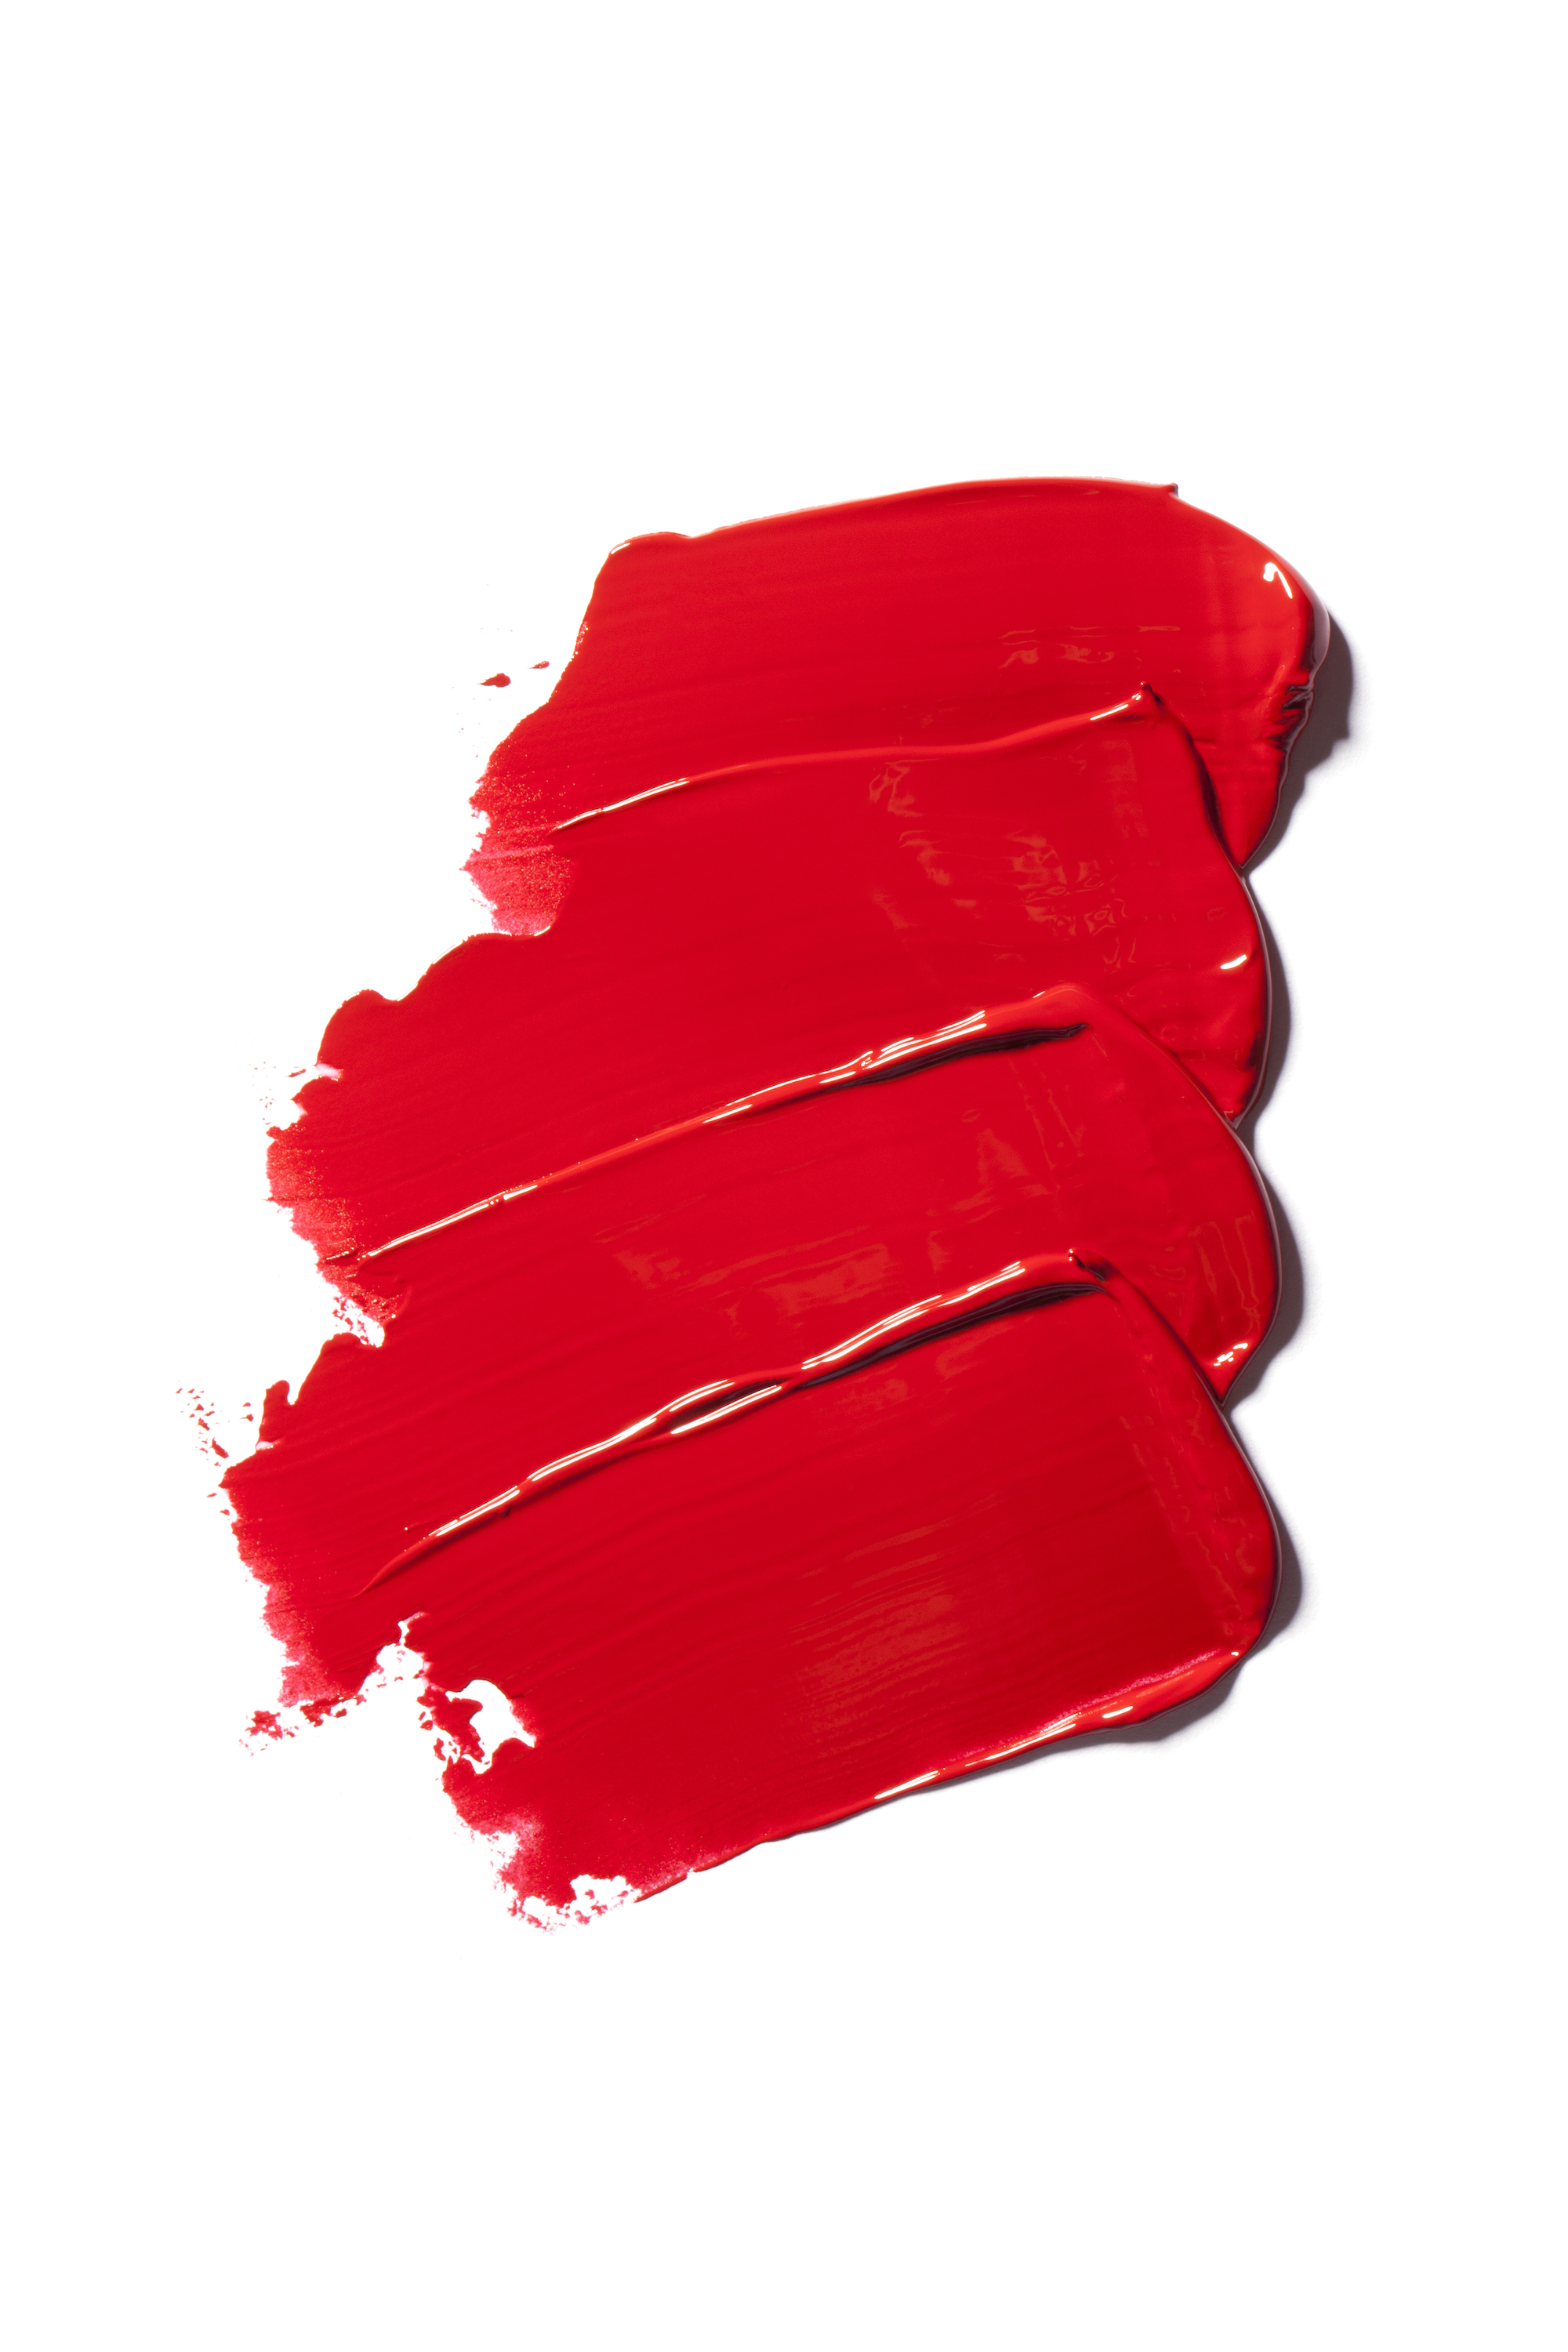 Rossetto rosso, mon amour!